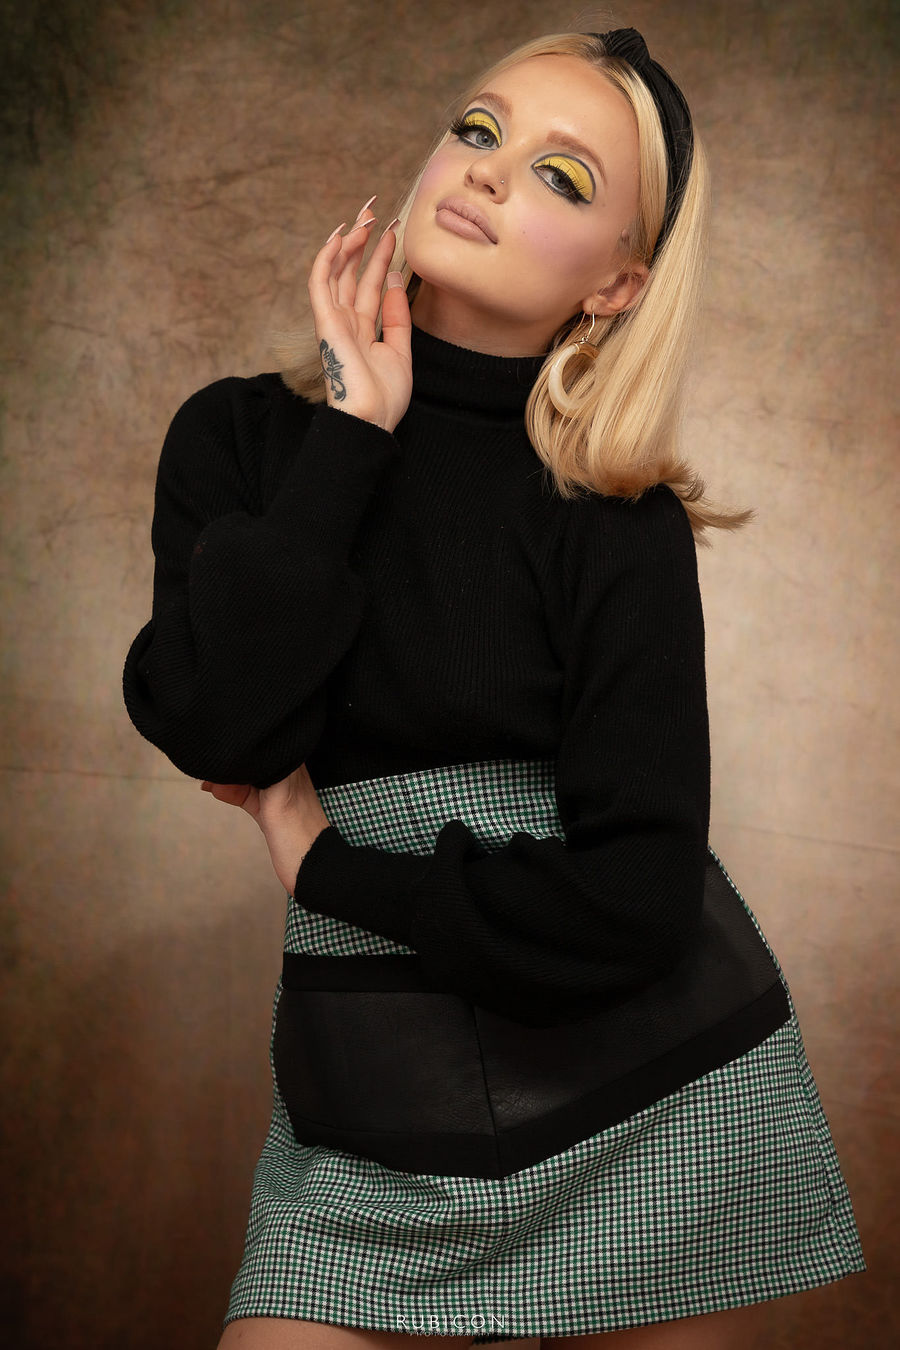 60's vibe / Photography by RUBICON PHOTOGRAPHY, Model Katey Model, Makeup by Kerry Claire / Uploaded 5th October 2020 @ 09:50 PM